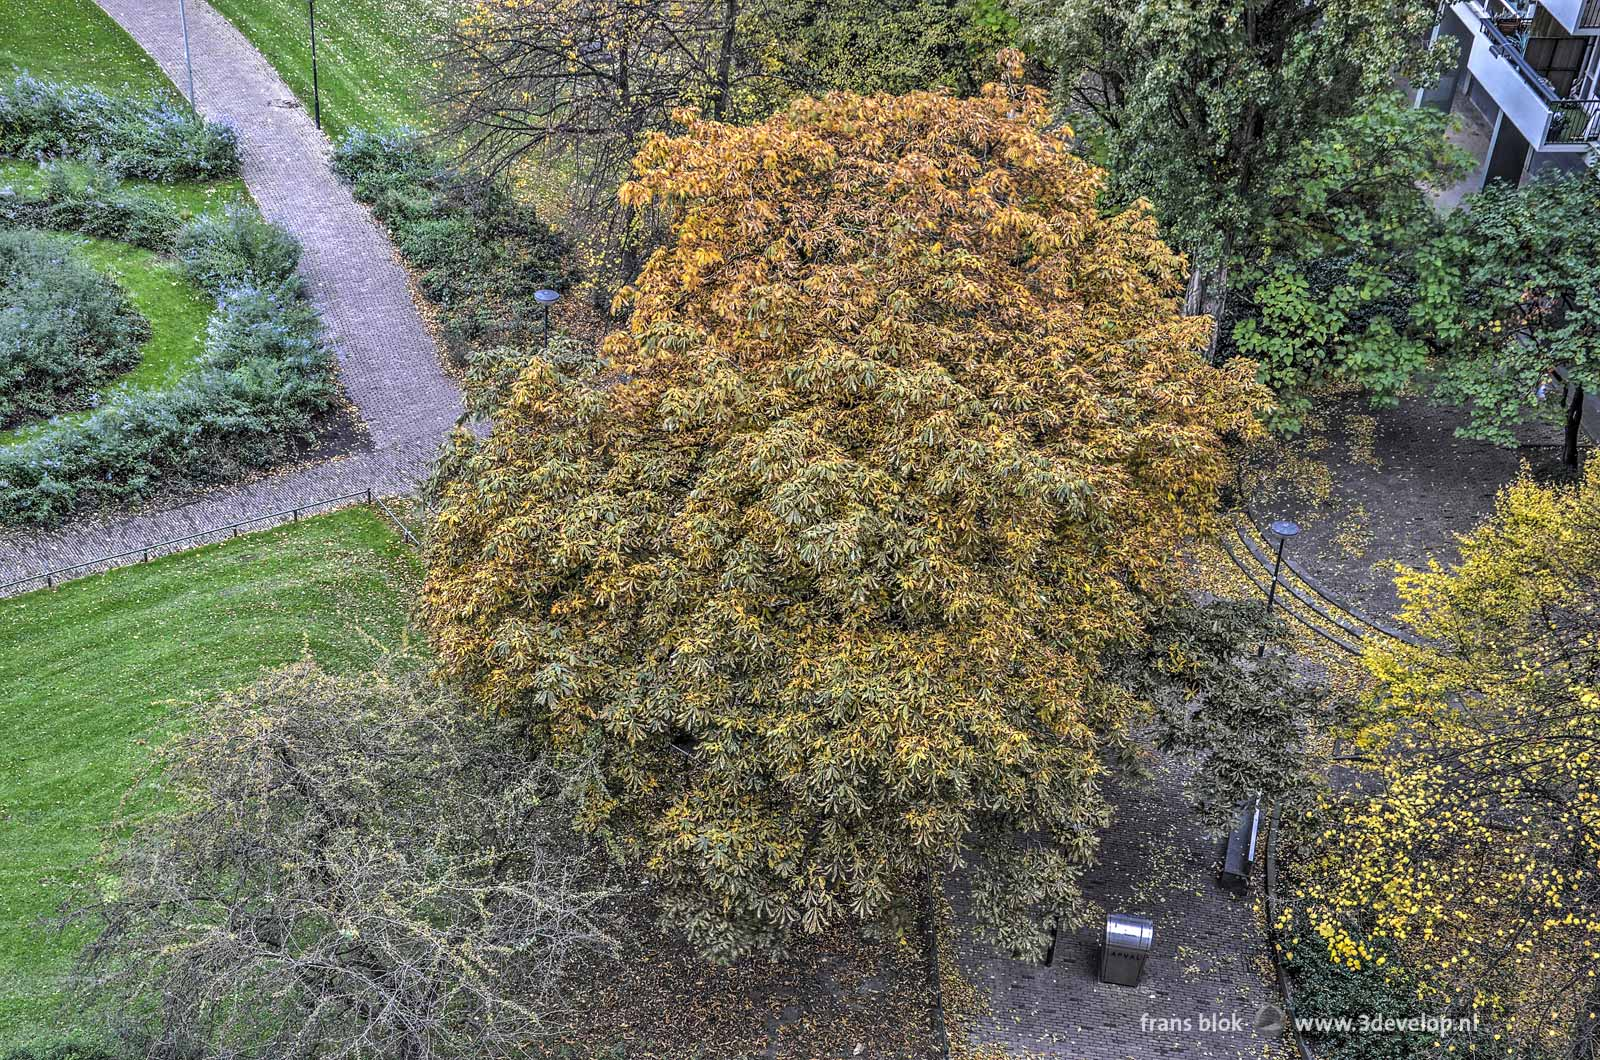 Aerial view of the chestnut tree on Jan Evertsenplaats near Lijnbaan in downtwon Rotterdam during autumn